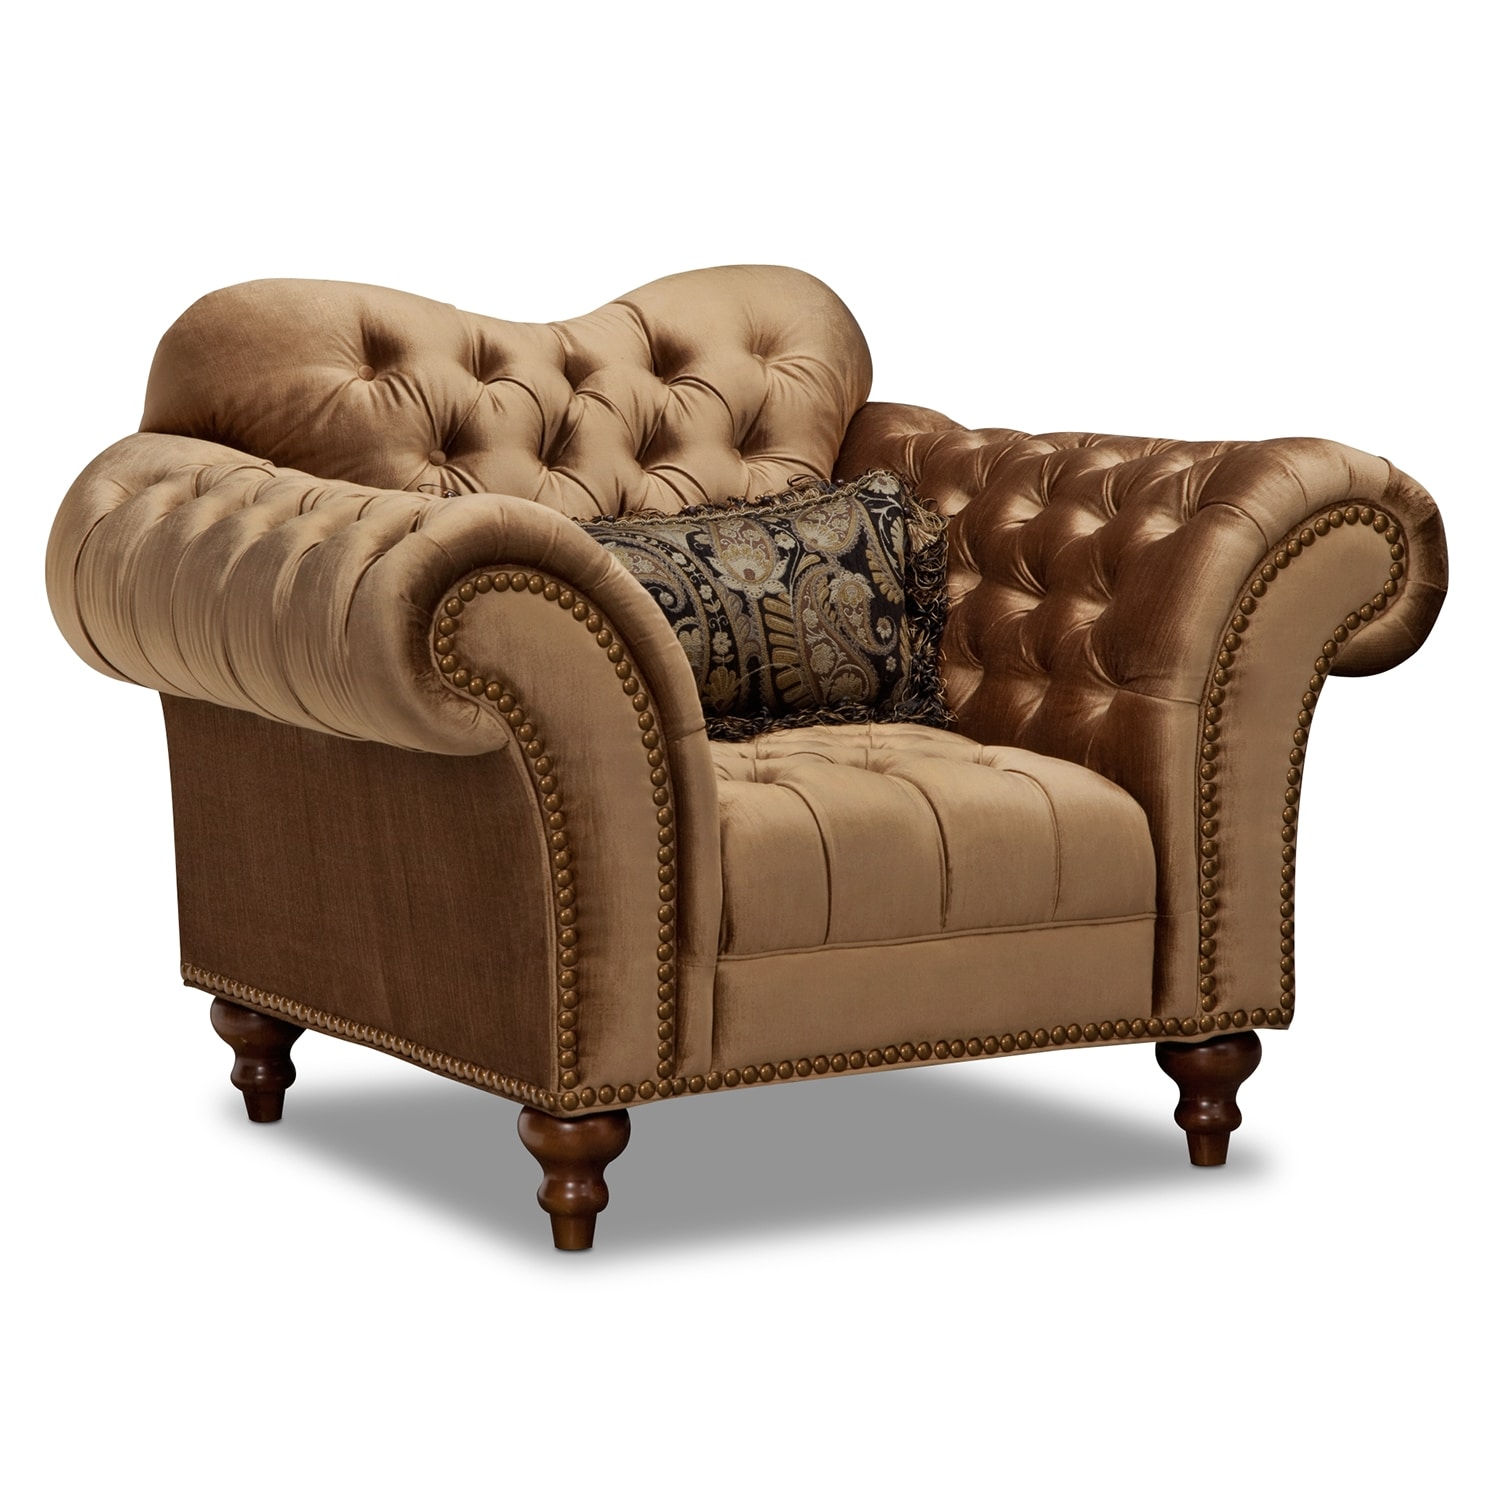 The Brittney Living Room Collection Bronze Value City Furniture